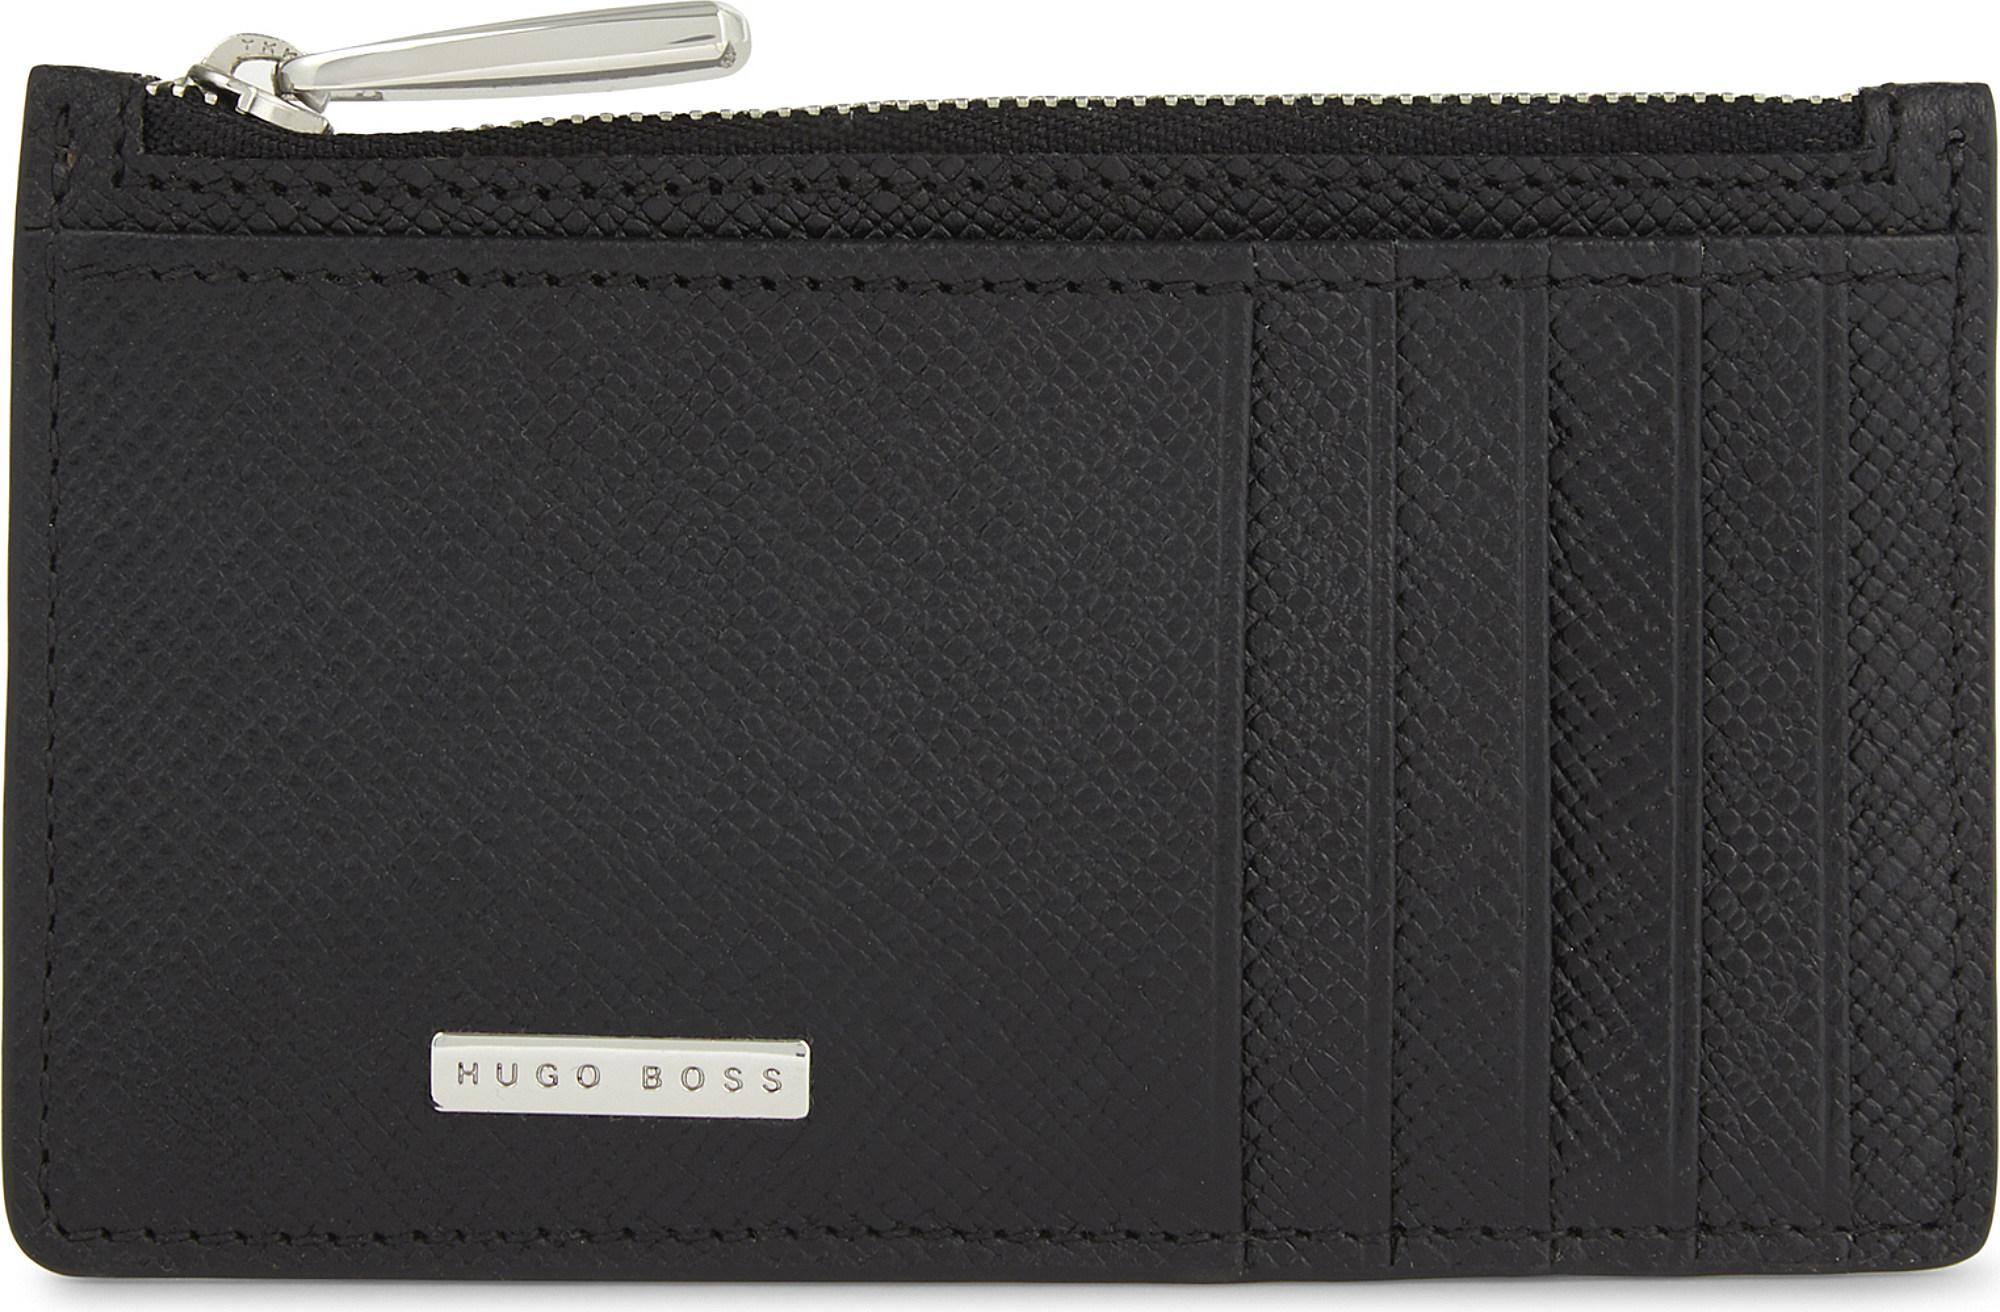 Lyst - Boss Signature Leather Zipped Card Holder in Black for Men